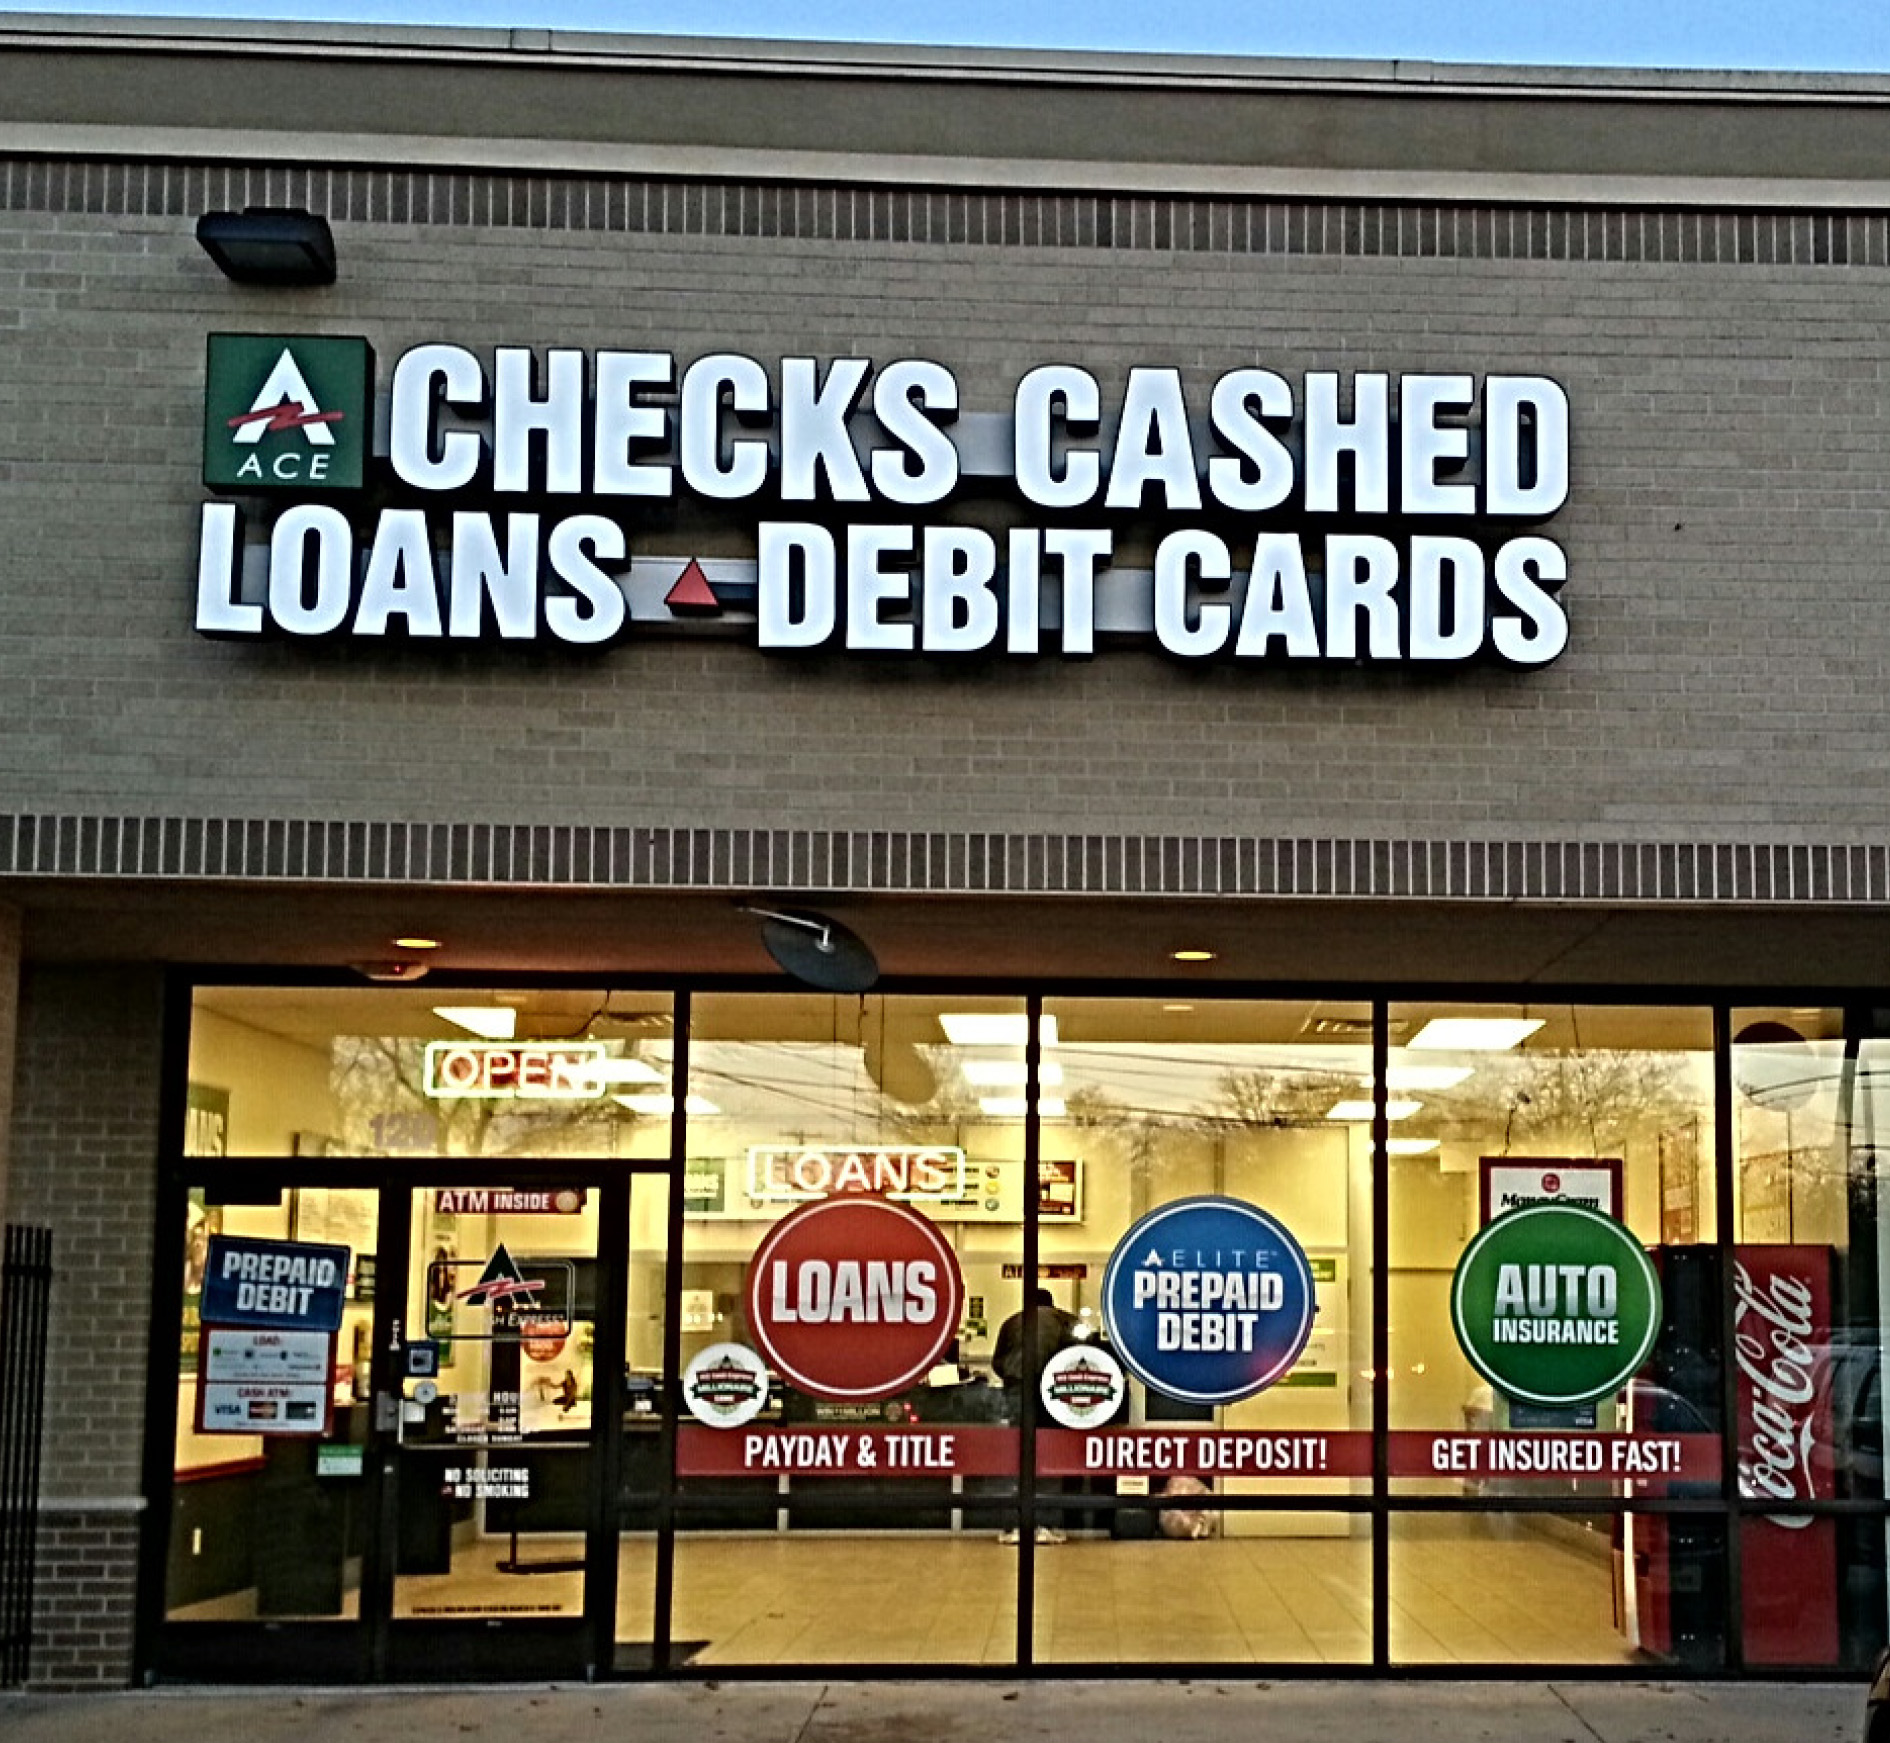 Payday loans in fort worth image 5